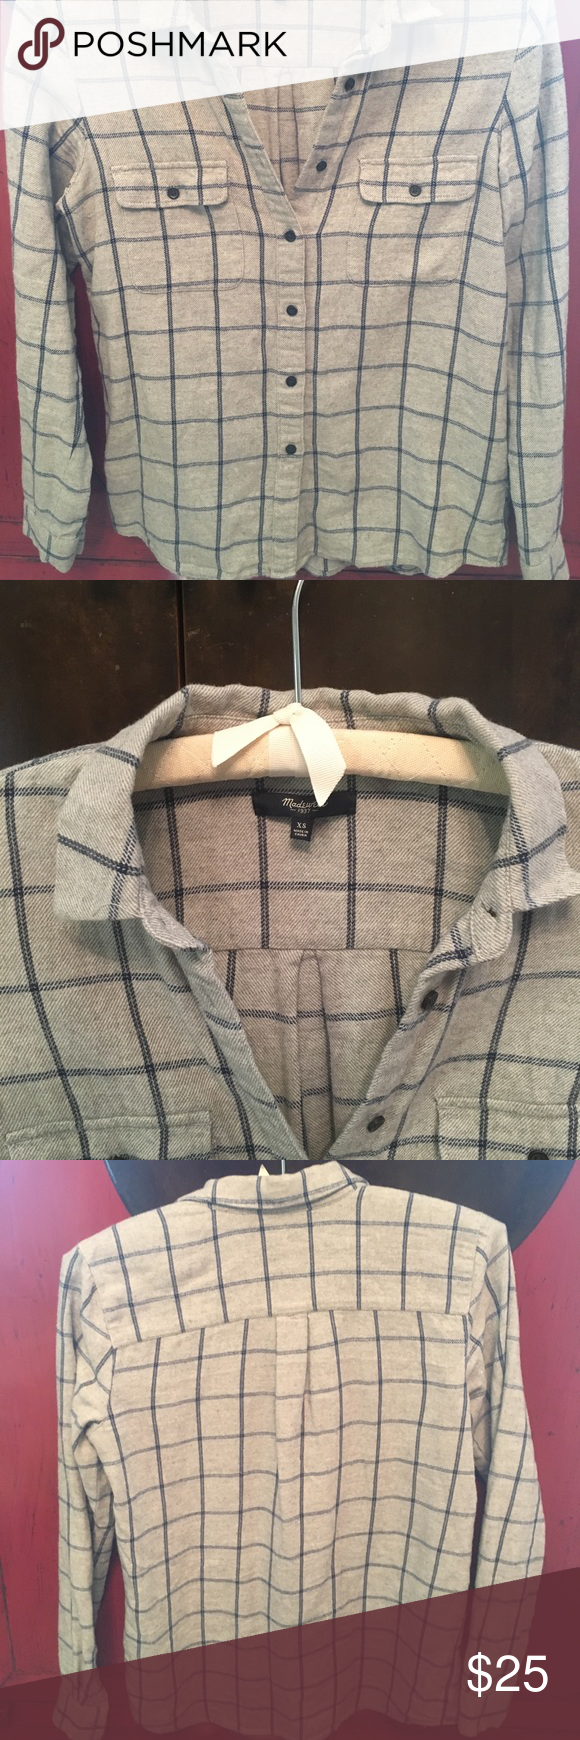 Flannel shirt xs  Madewell Button Down Flannel Shirt Size XS  Madewell Flannel